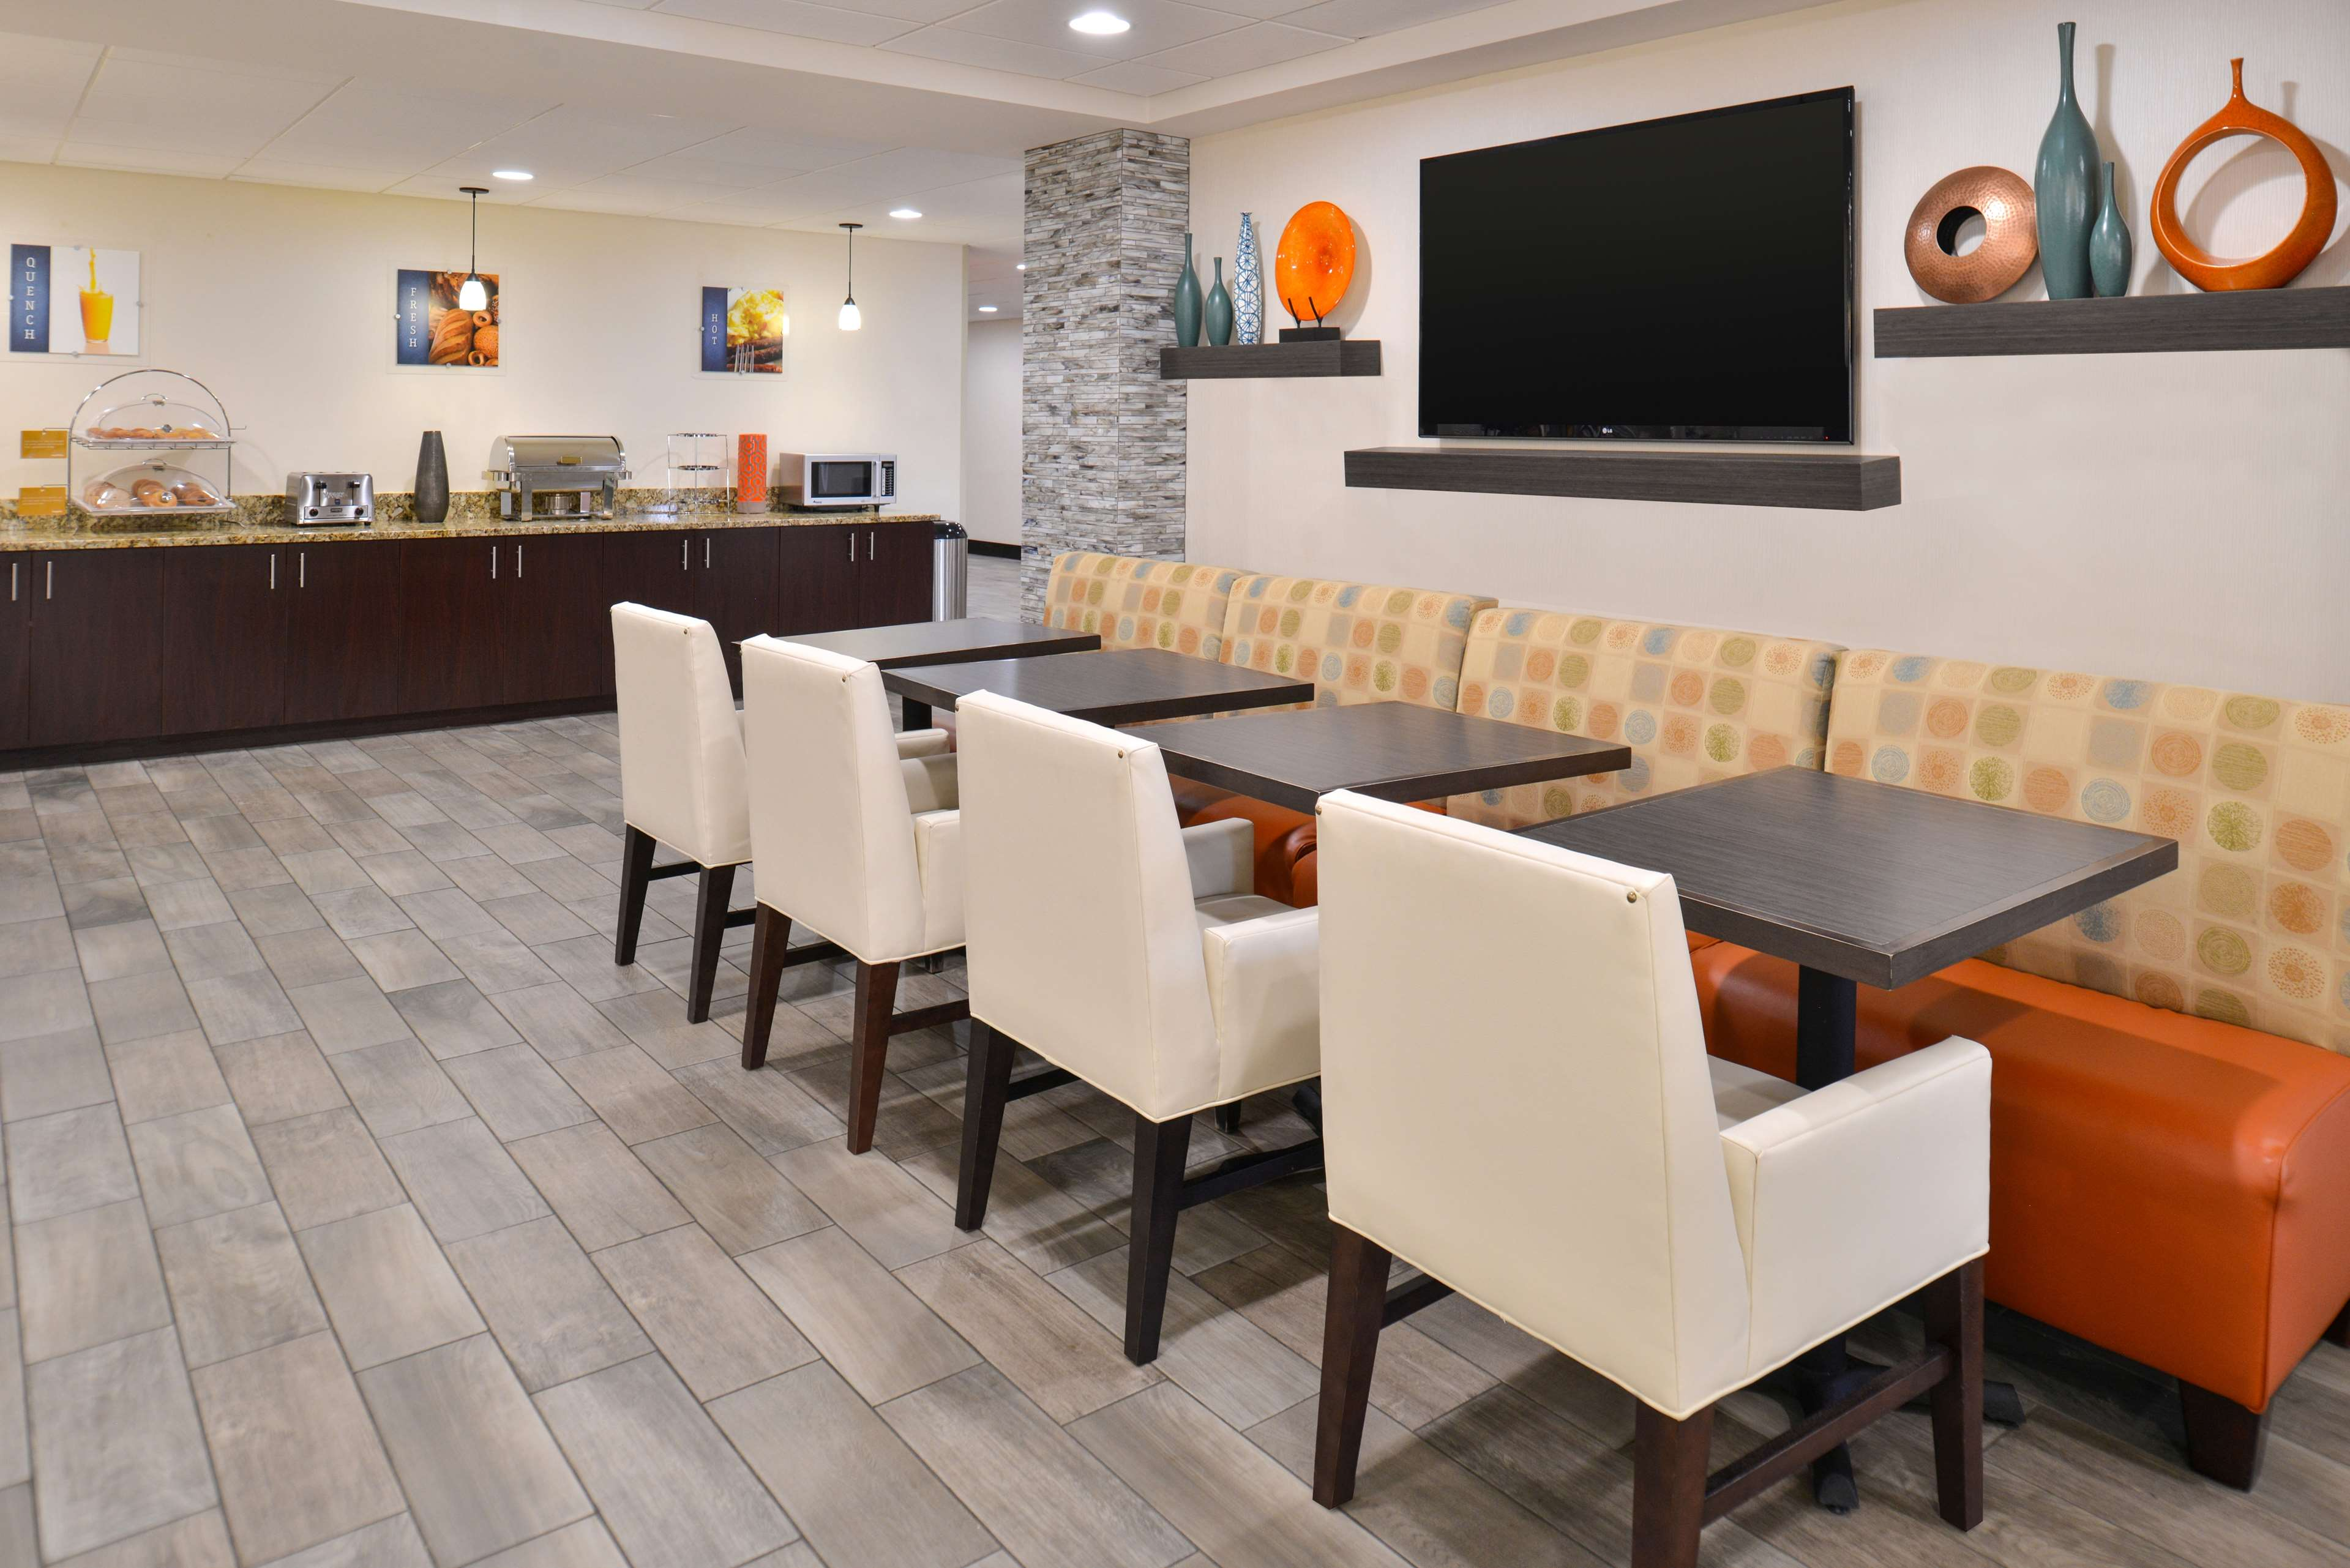 Best Western Plus Chicagoland - Countryside image 16